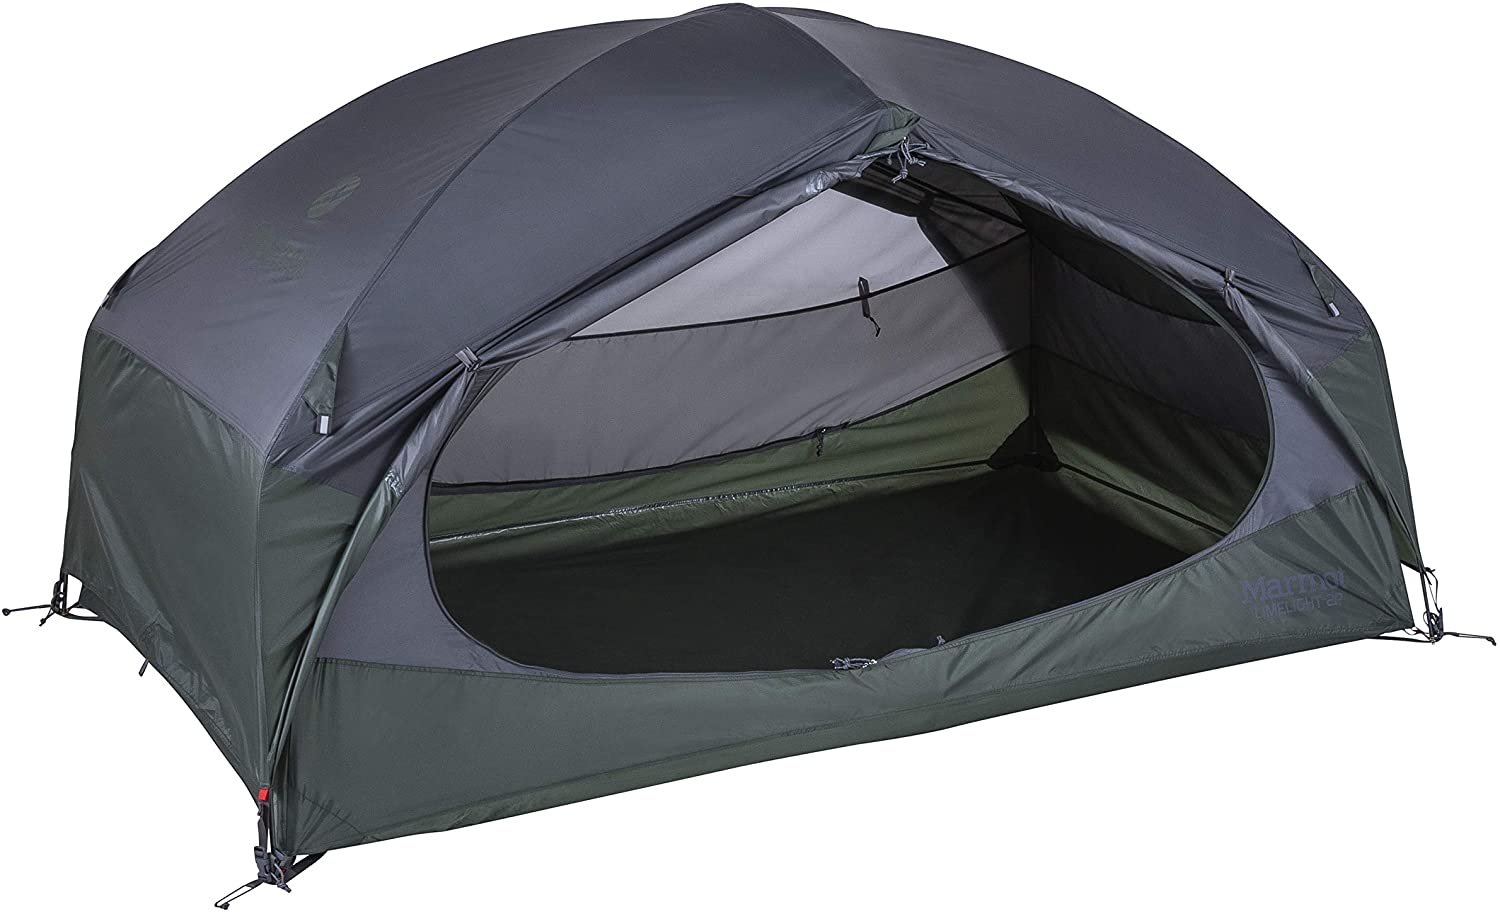 Marmot Limelight 2 Person Camping Tent with Footprint